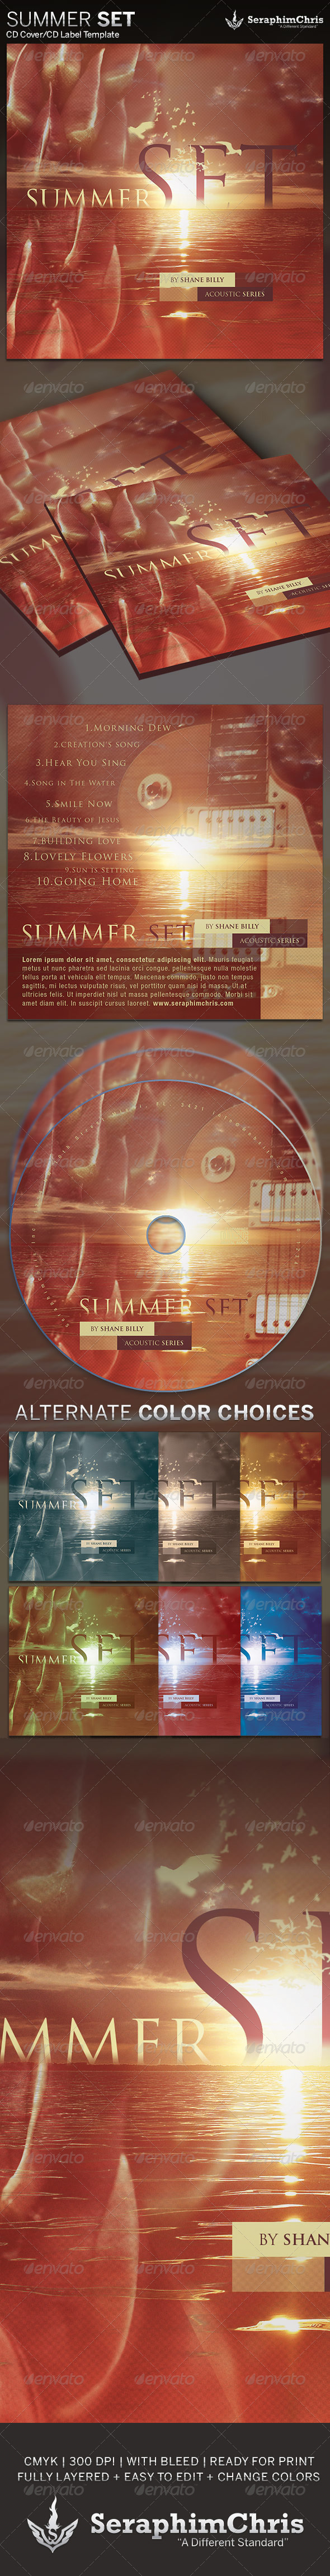 Summer Set: CD Cover Artwork Template - CD & DVD Artwork Print Templates